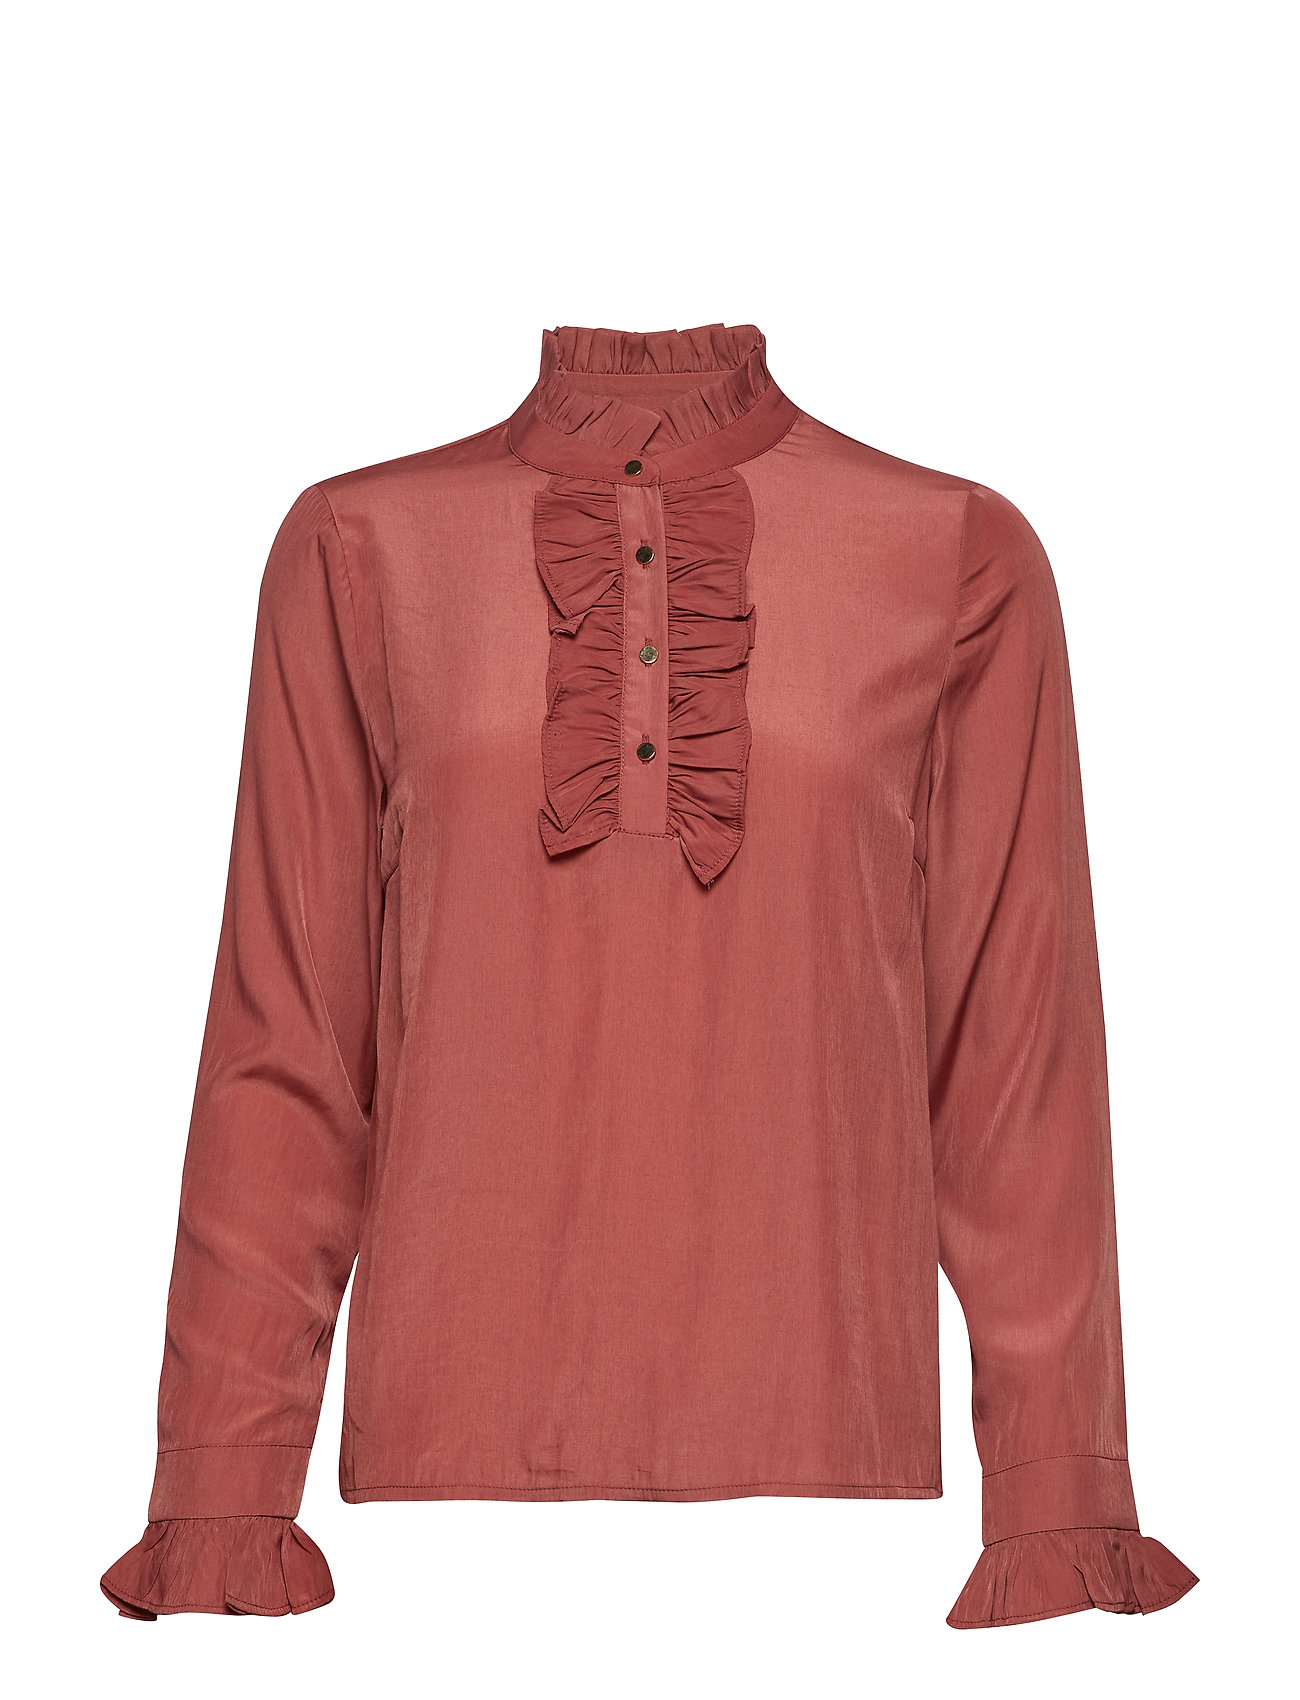 Sofie Schnoor Shirt - ROSE